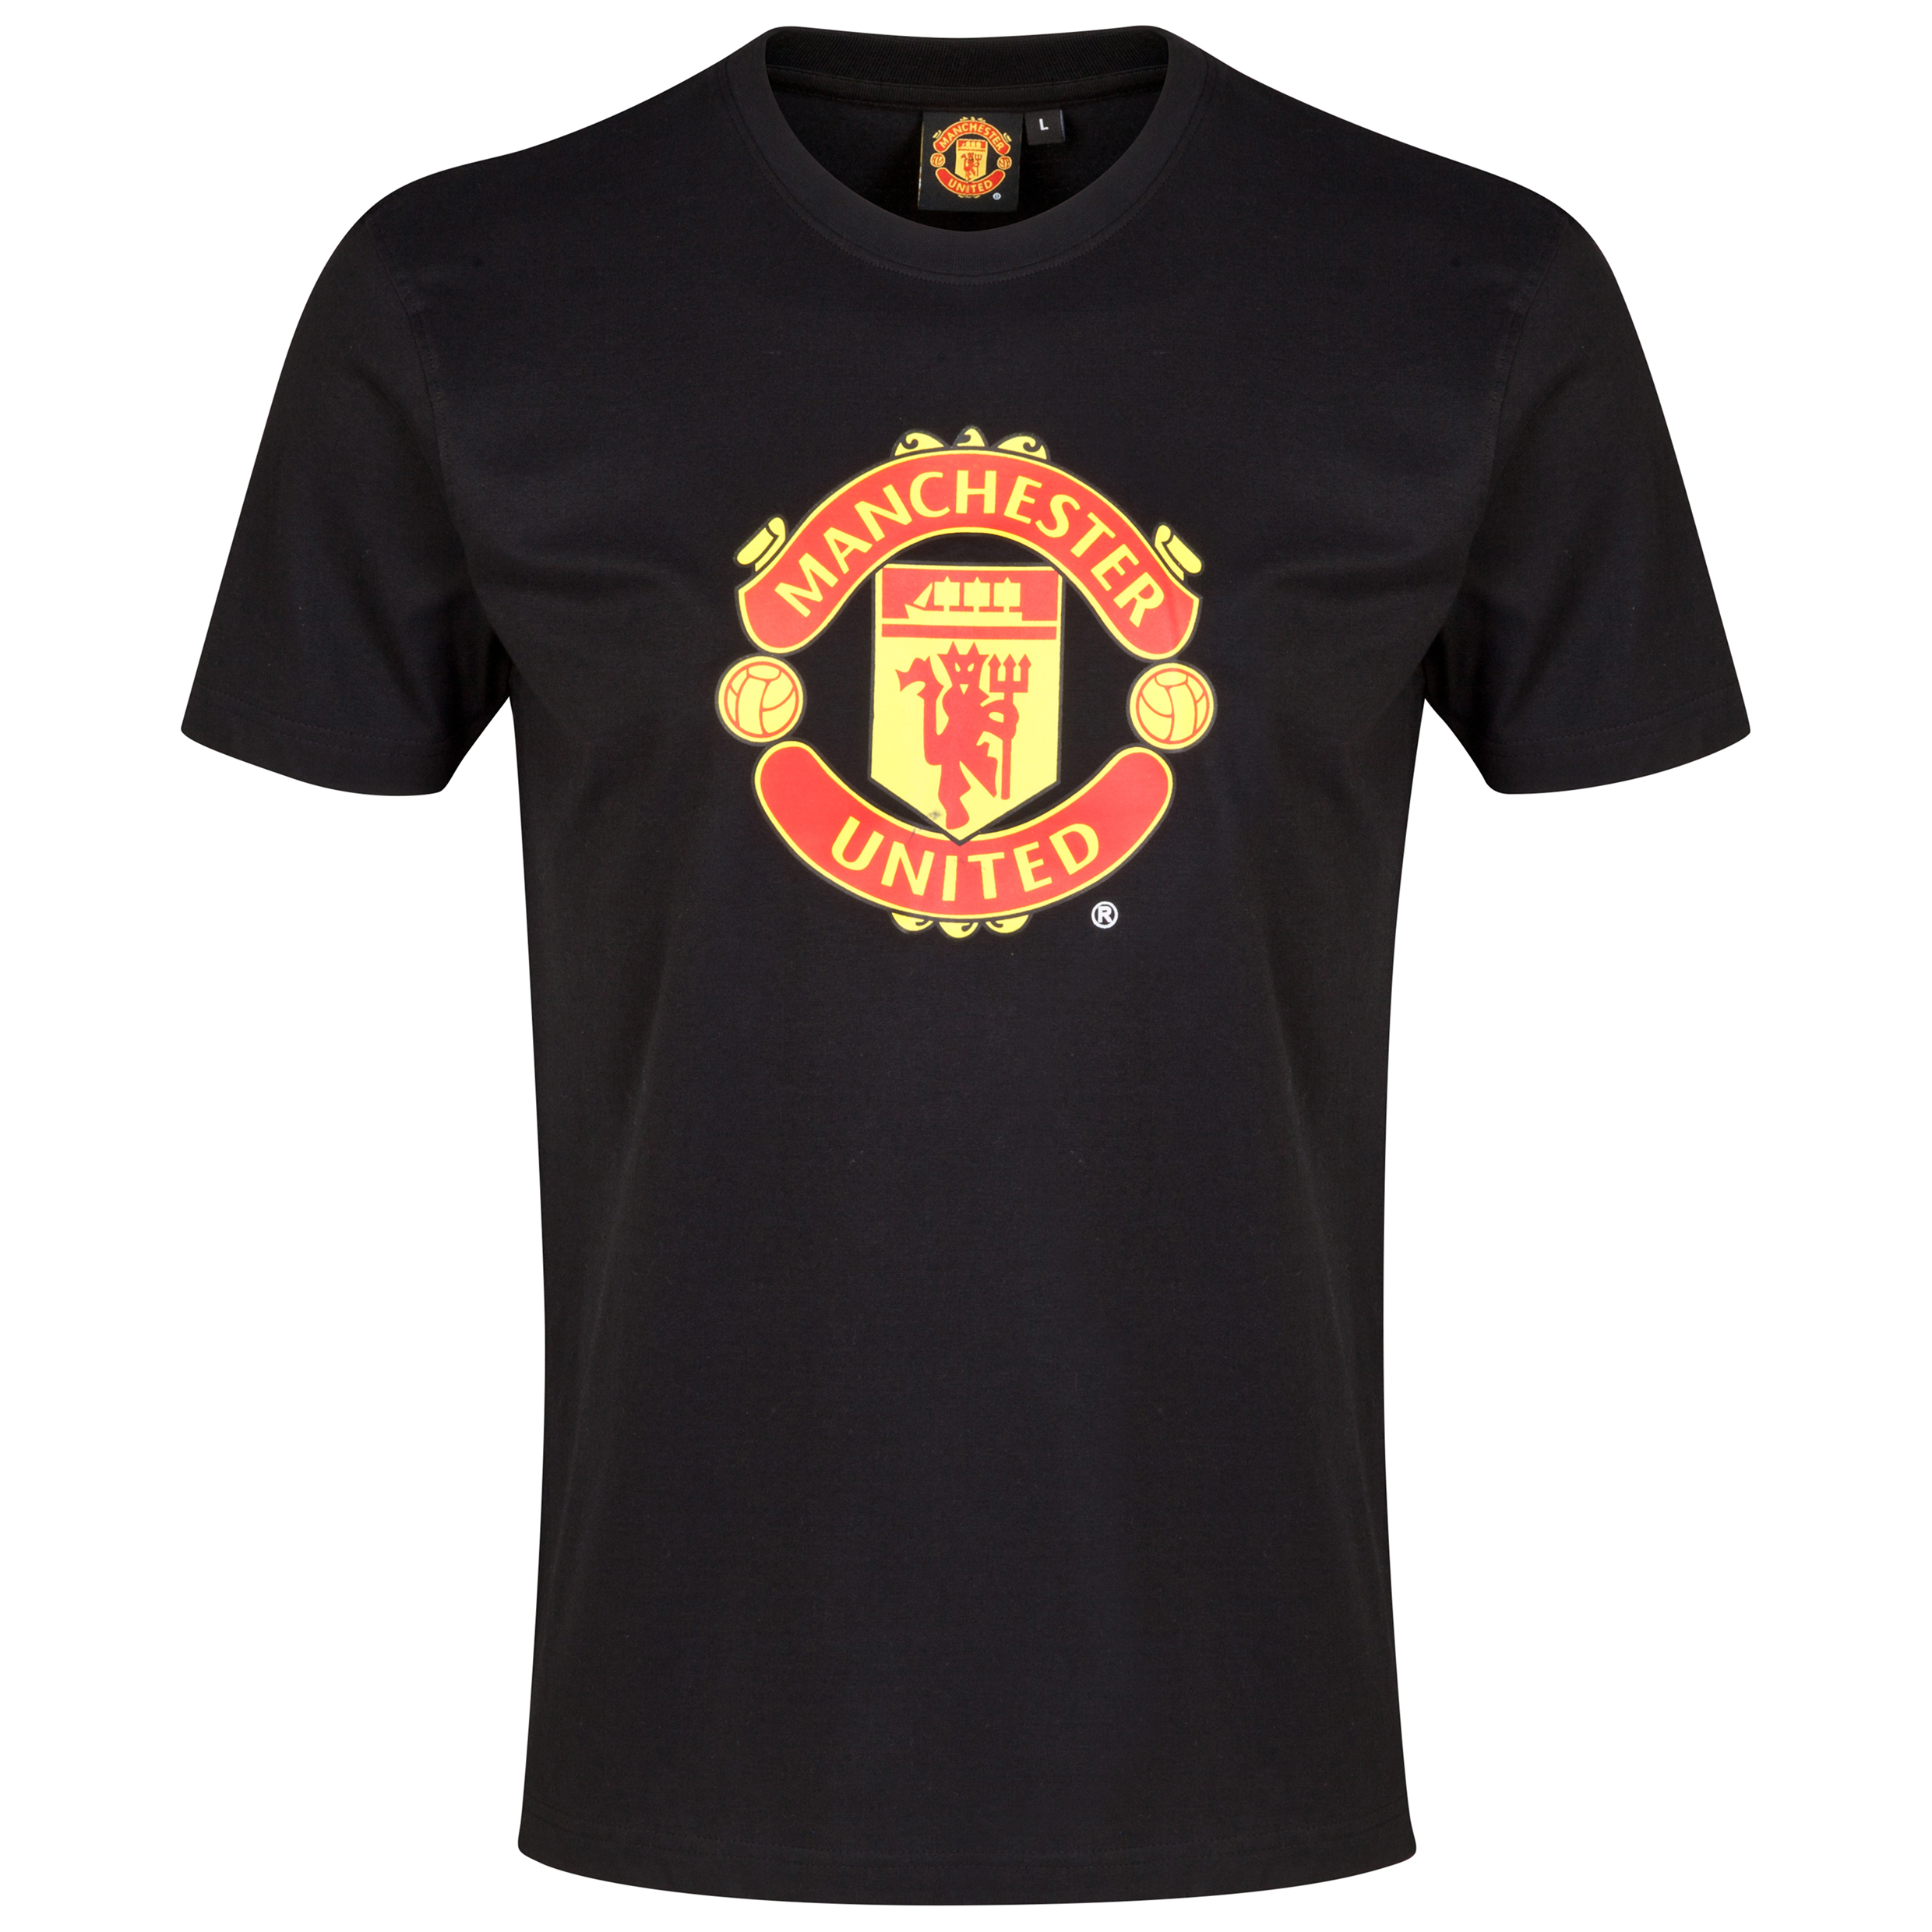 Manchester United Crest T-Shirt - Black - Boys